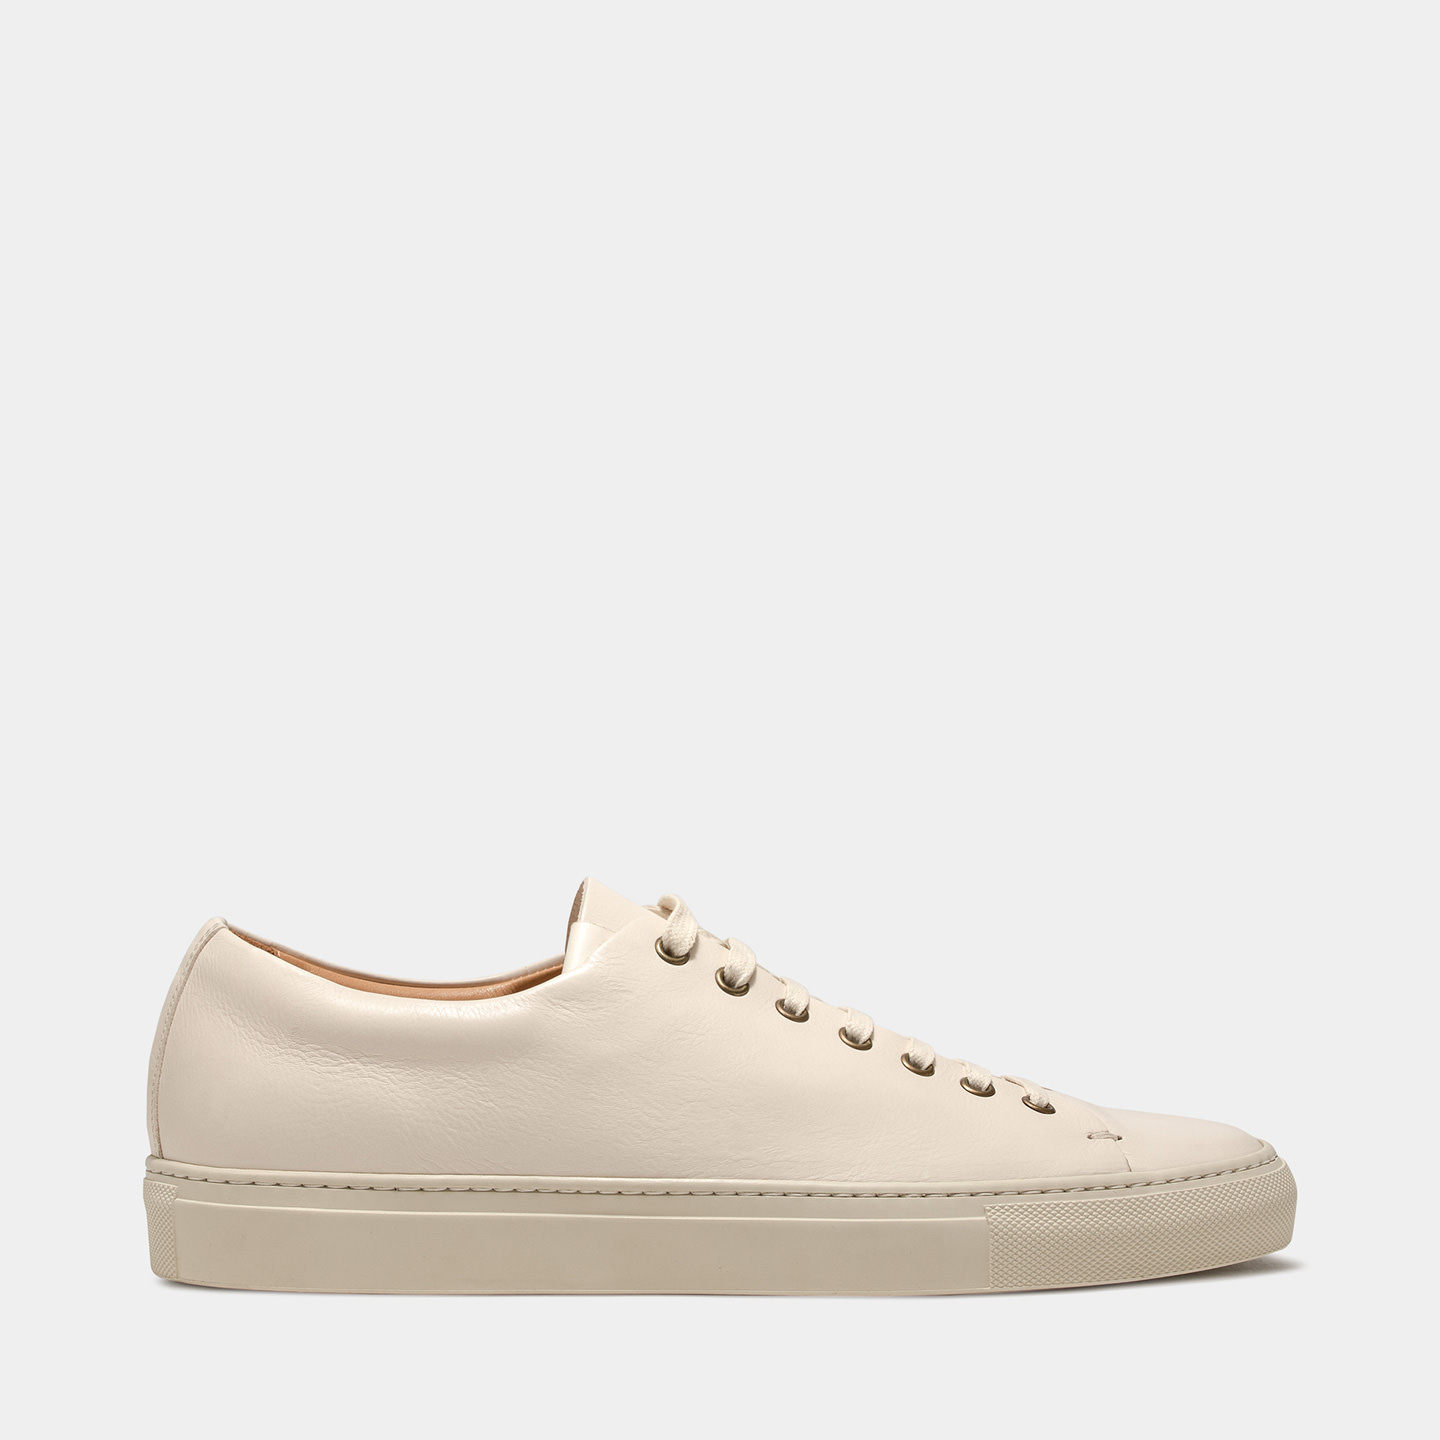 BUTTERO: SNEAKERS TANINO BASSE IN PELLE BIANCO